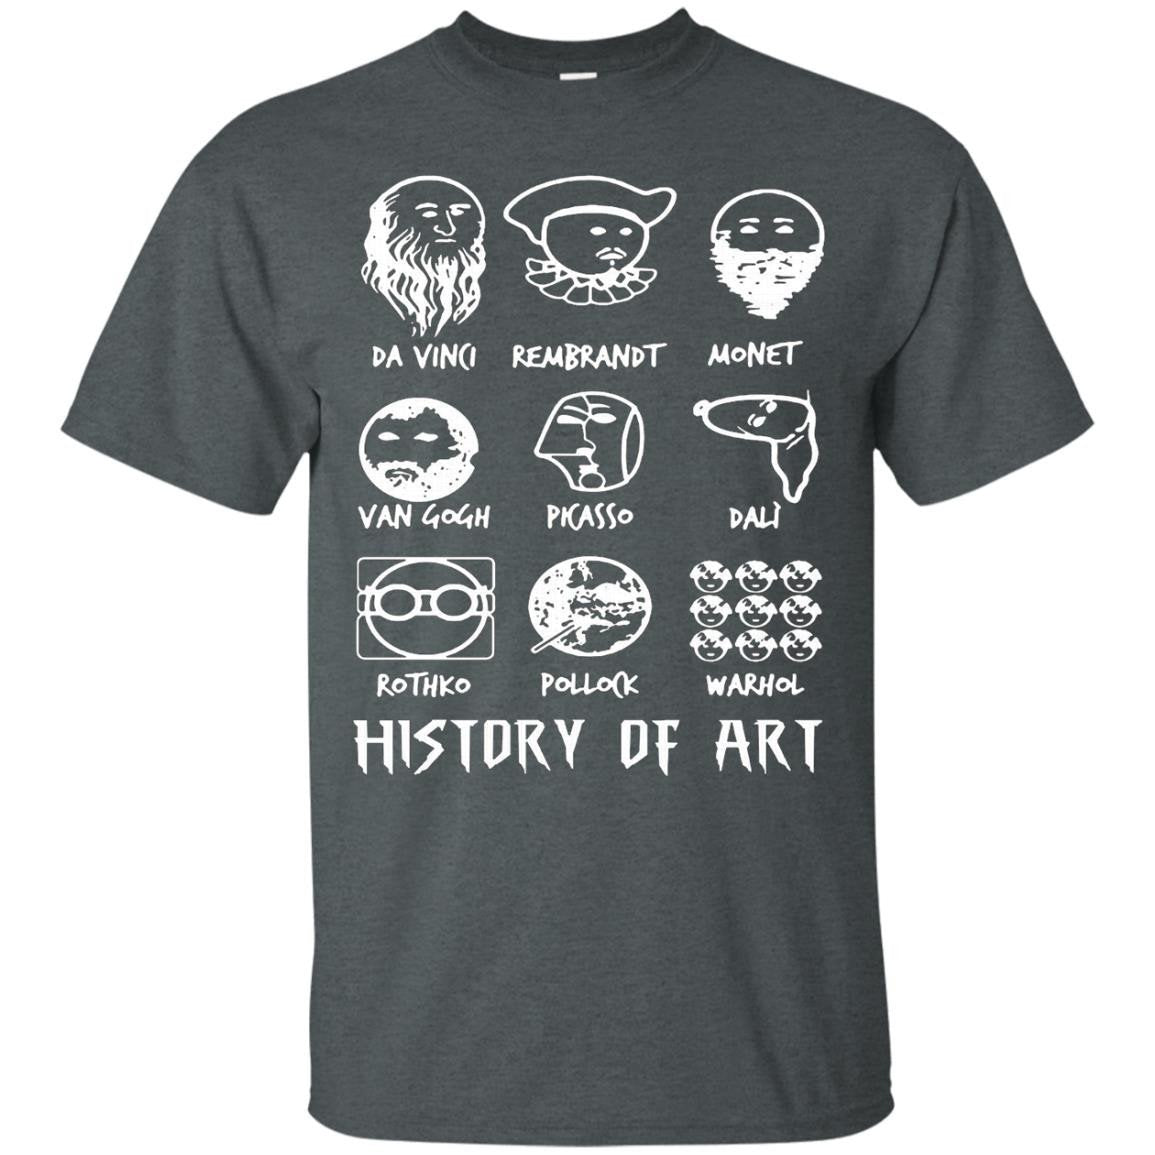 History of Art Funny T-shirt - T-Shirt